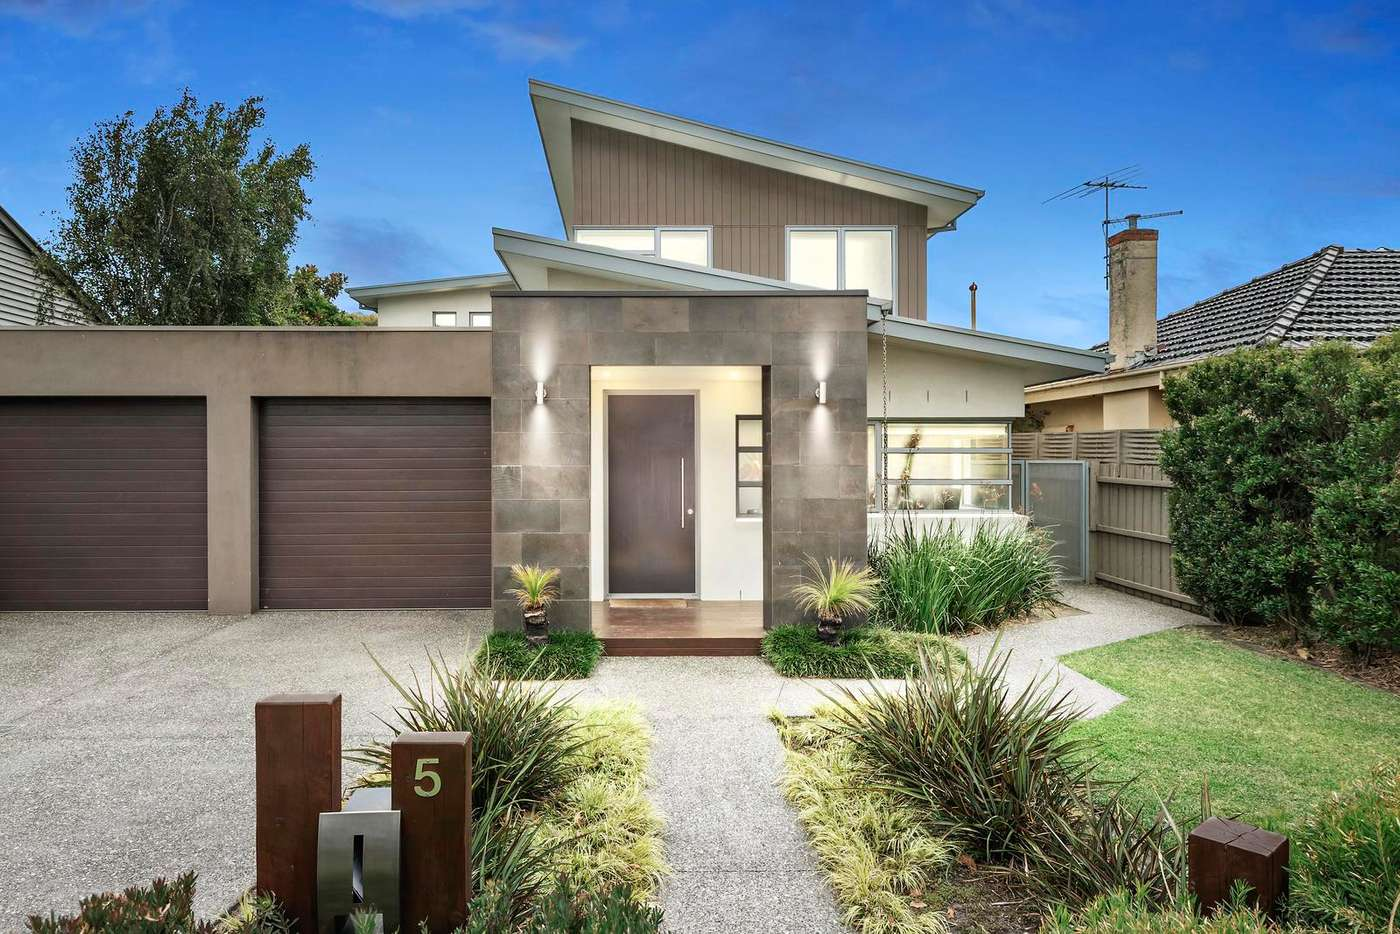 Main view of Homely house listing, 5 Connell Street, Mordialloc VIC 3195